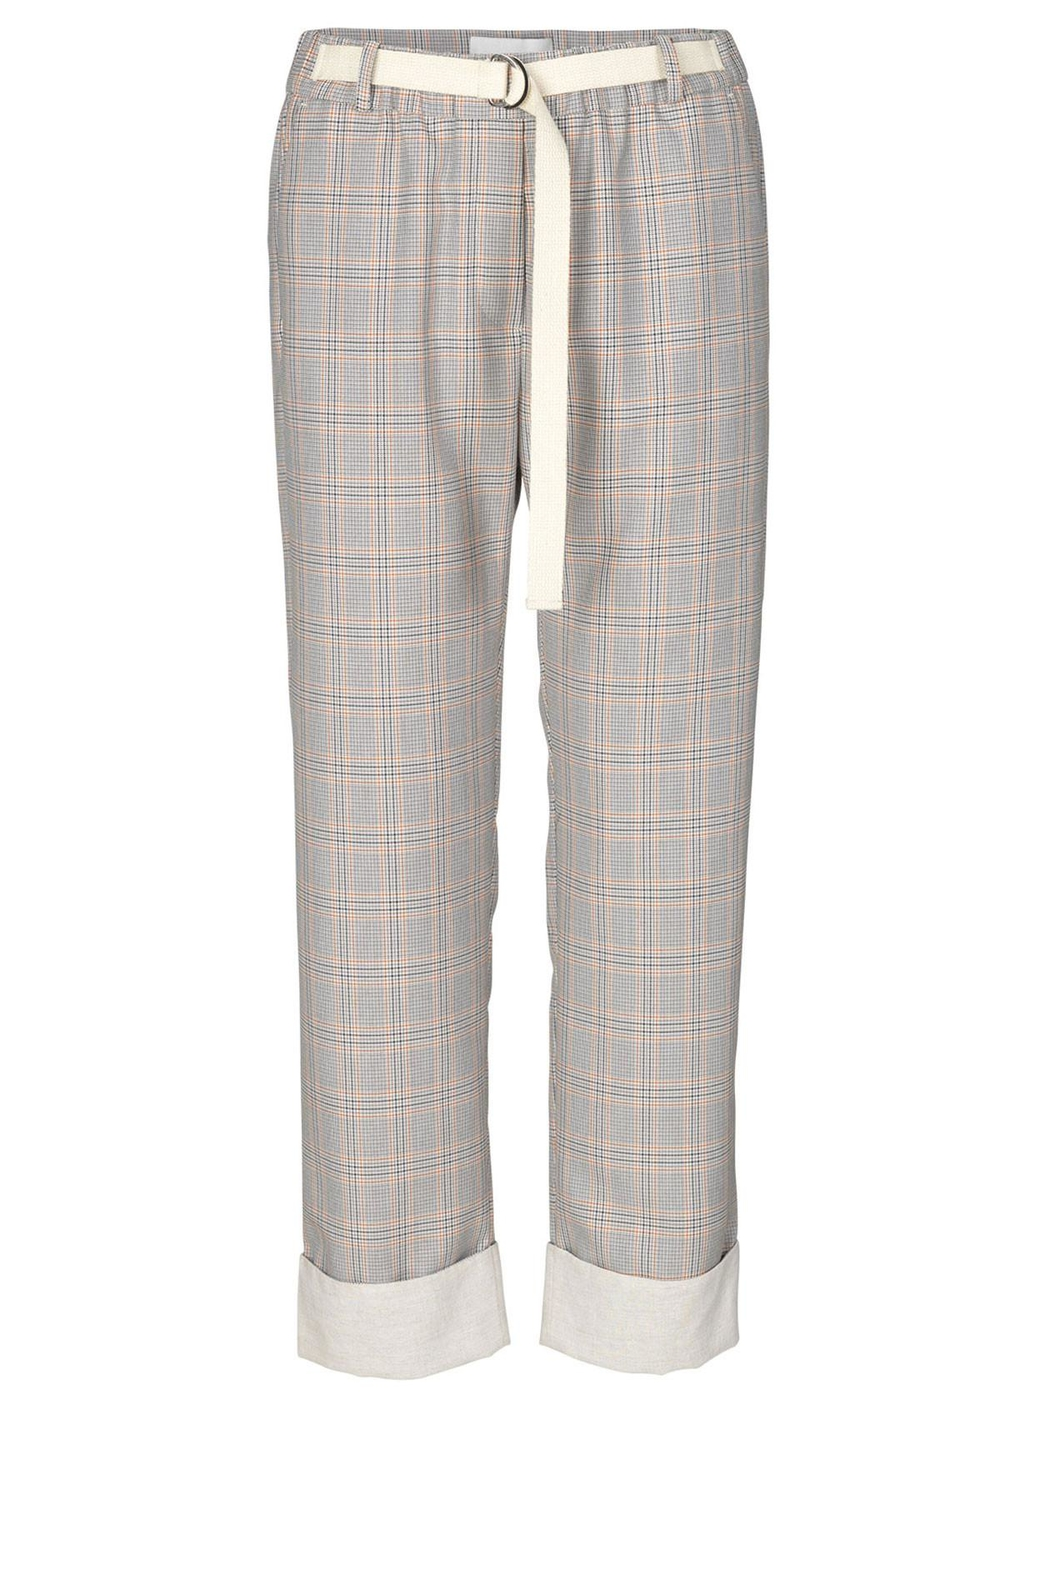 Munthe Checkered Pants - Back Cropped Image